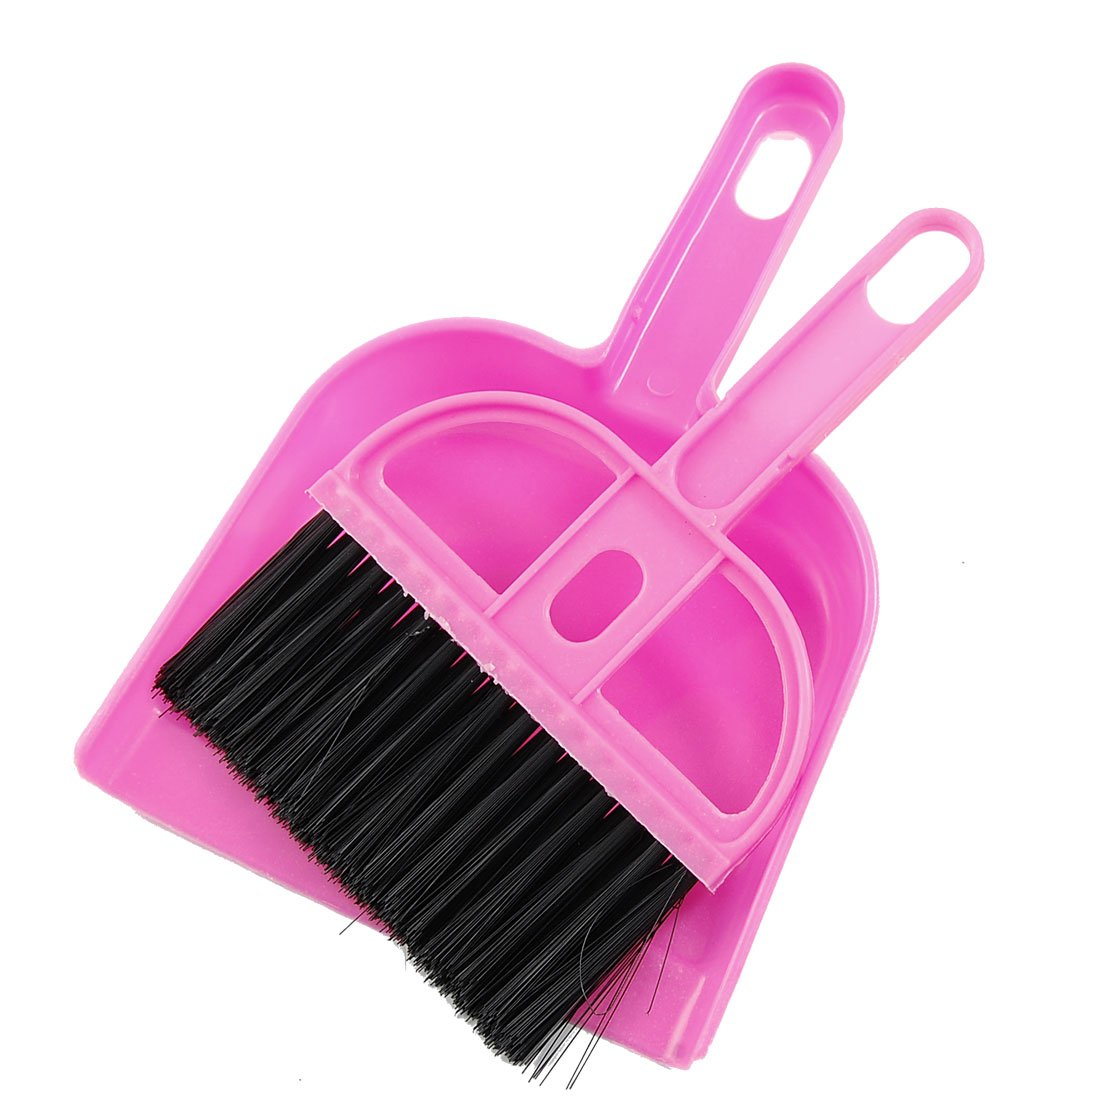 High Quality 2015 Highly CommendTOP! Amico Office Home Car Cleaning Mini Whisk Broom Dustpan Set Pink Black(China (Mainland))